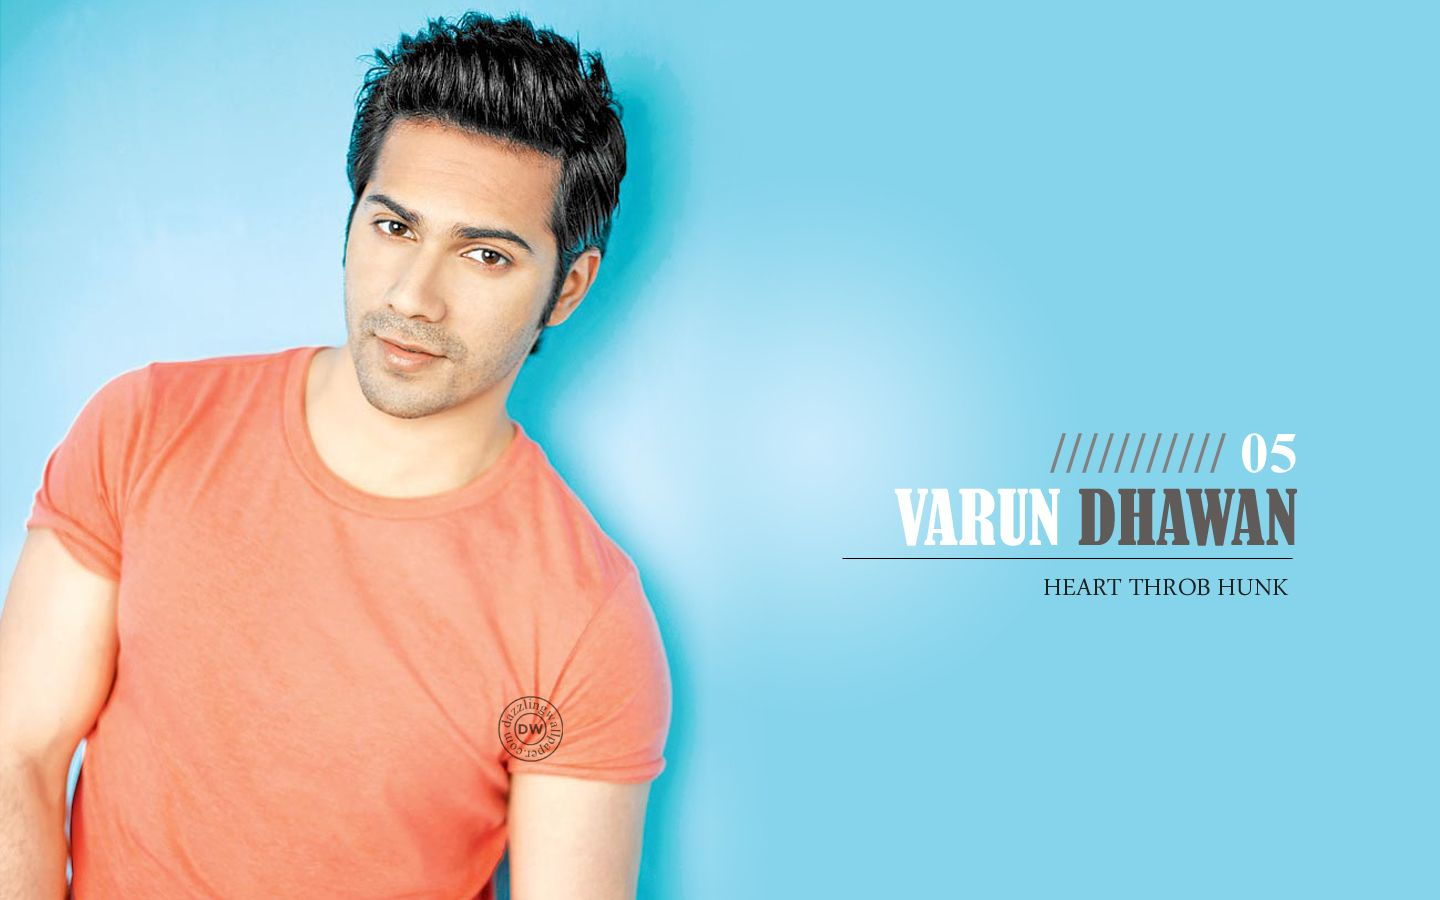 Varun Dhawan New Hd Wallpaper Bollywood Actor Indian